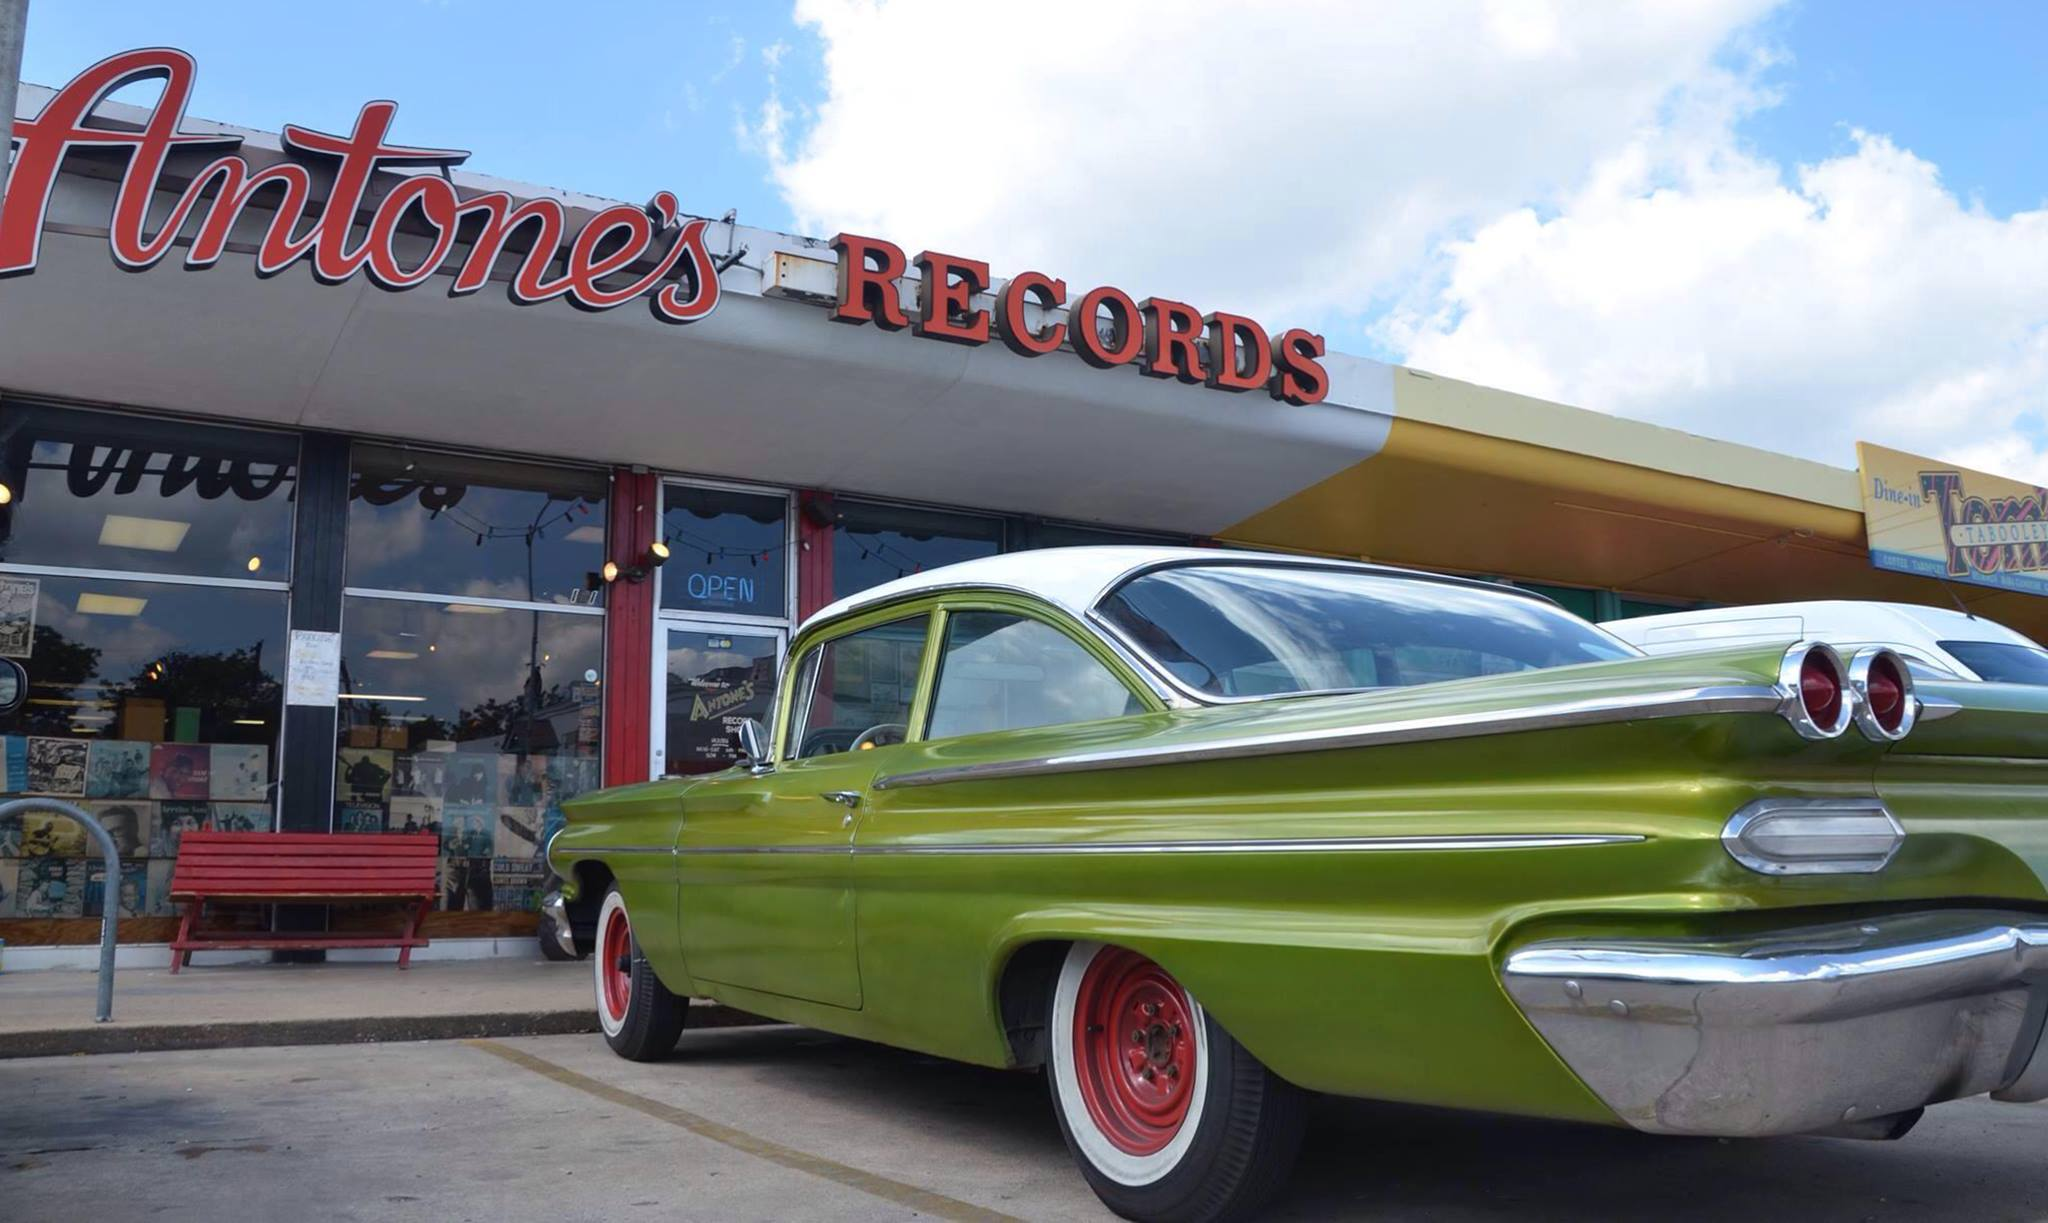 Image of a classic car in front of Antone's Record Shop. Check out our list of places to visit along miles 13-18 of the Austin Marathon course the next time you explore Austin.